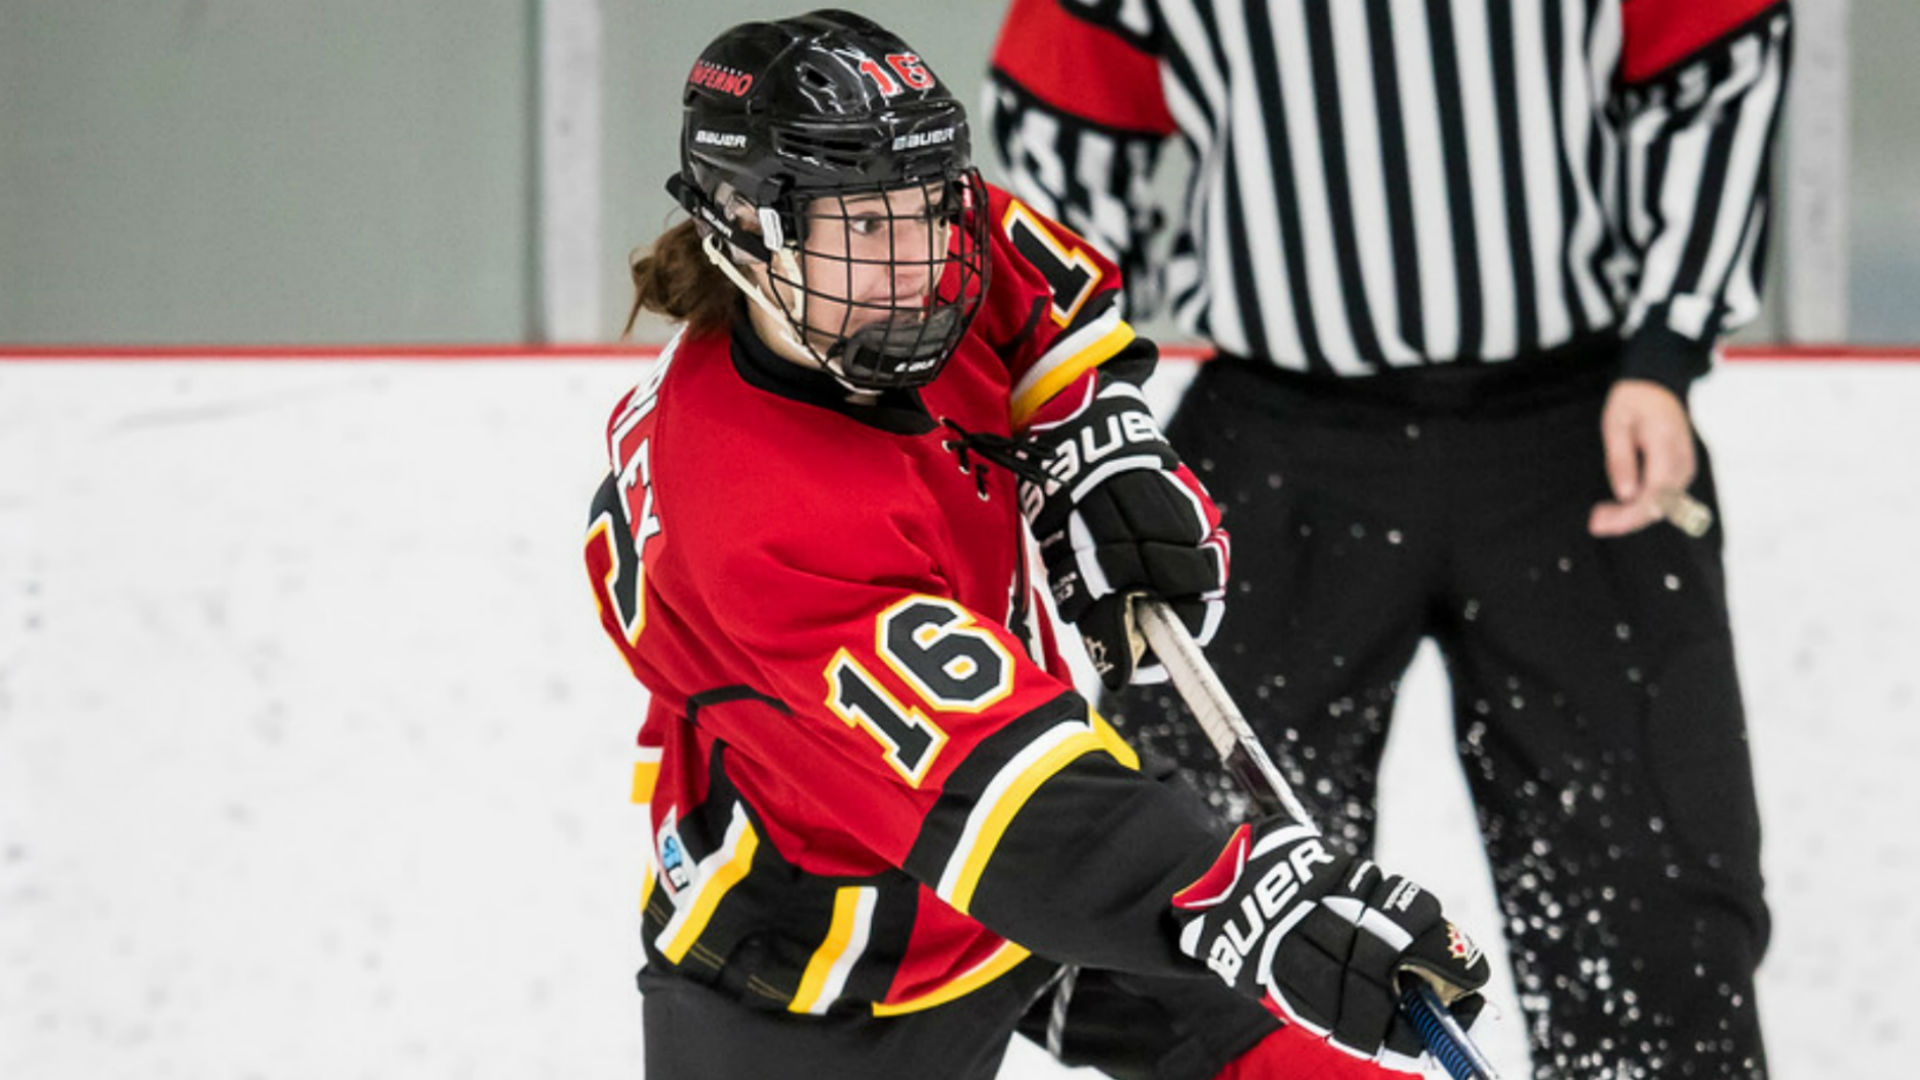 Inside the CWHL: Sophie Shirley's big decision